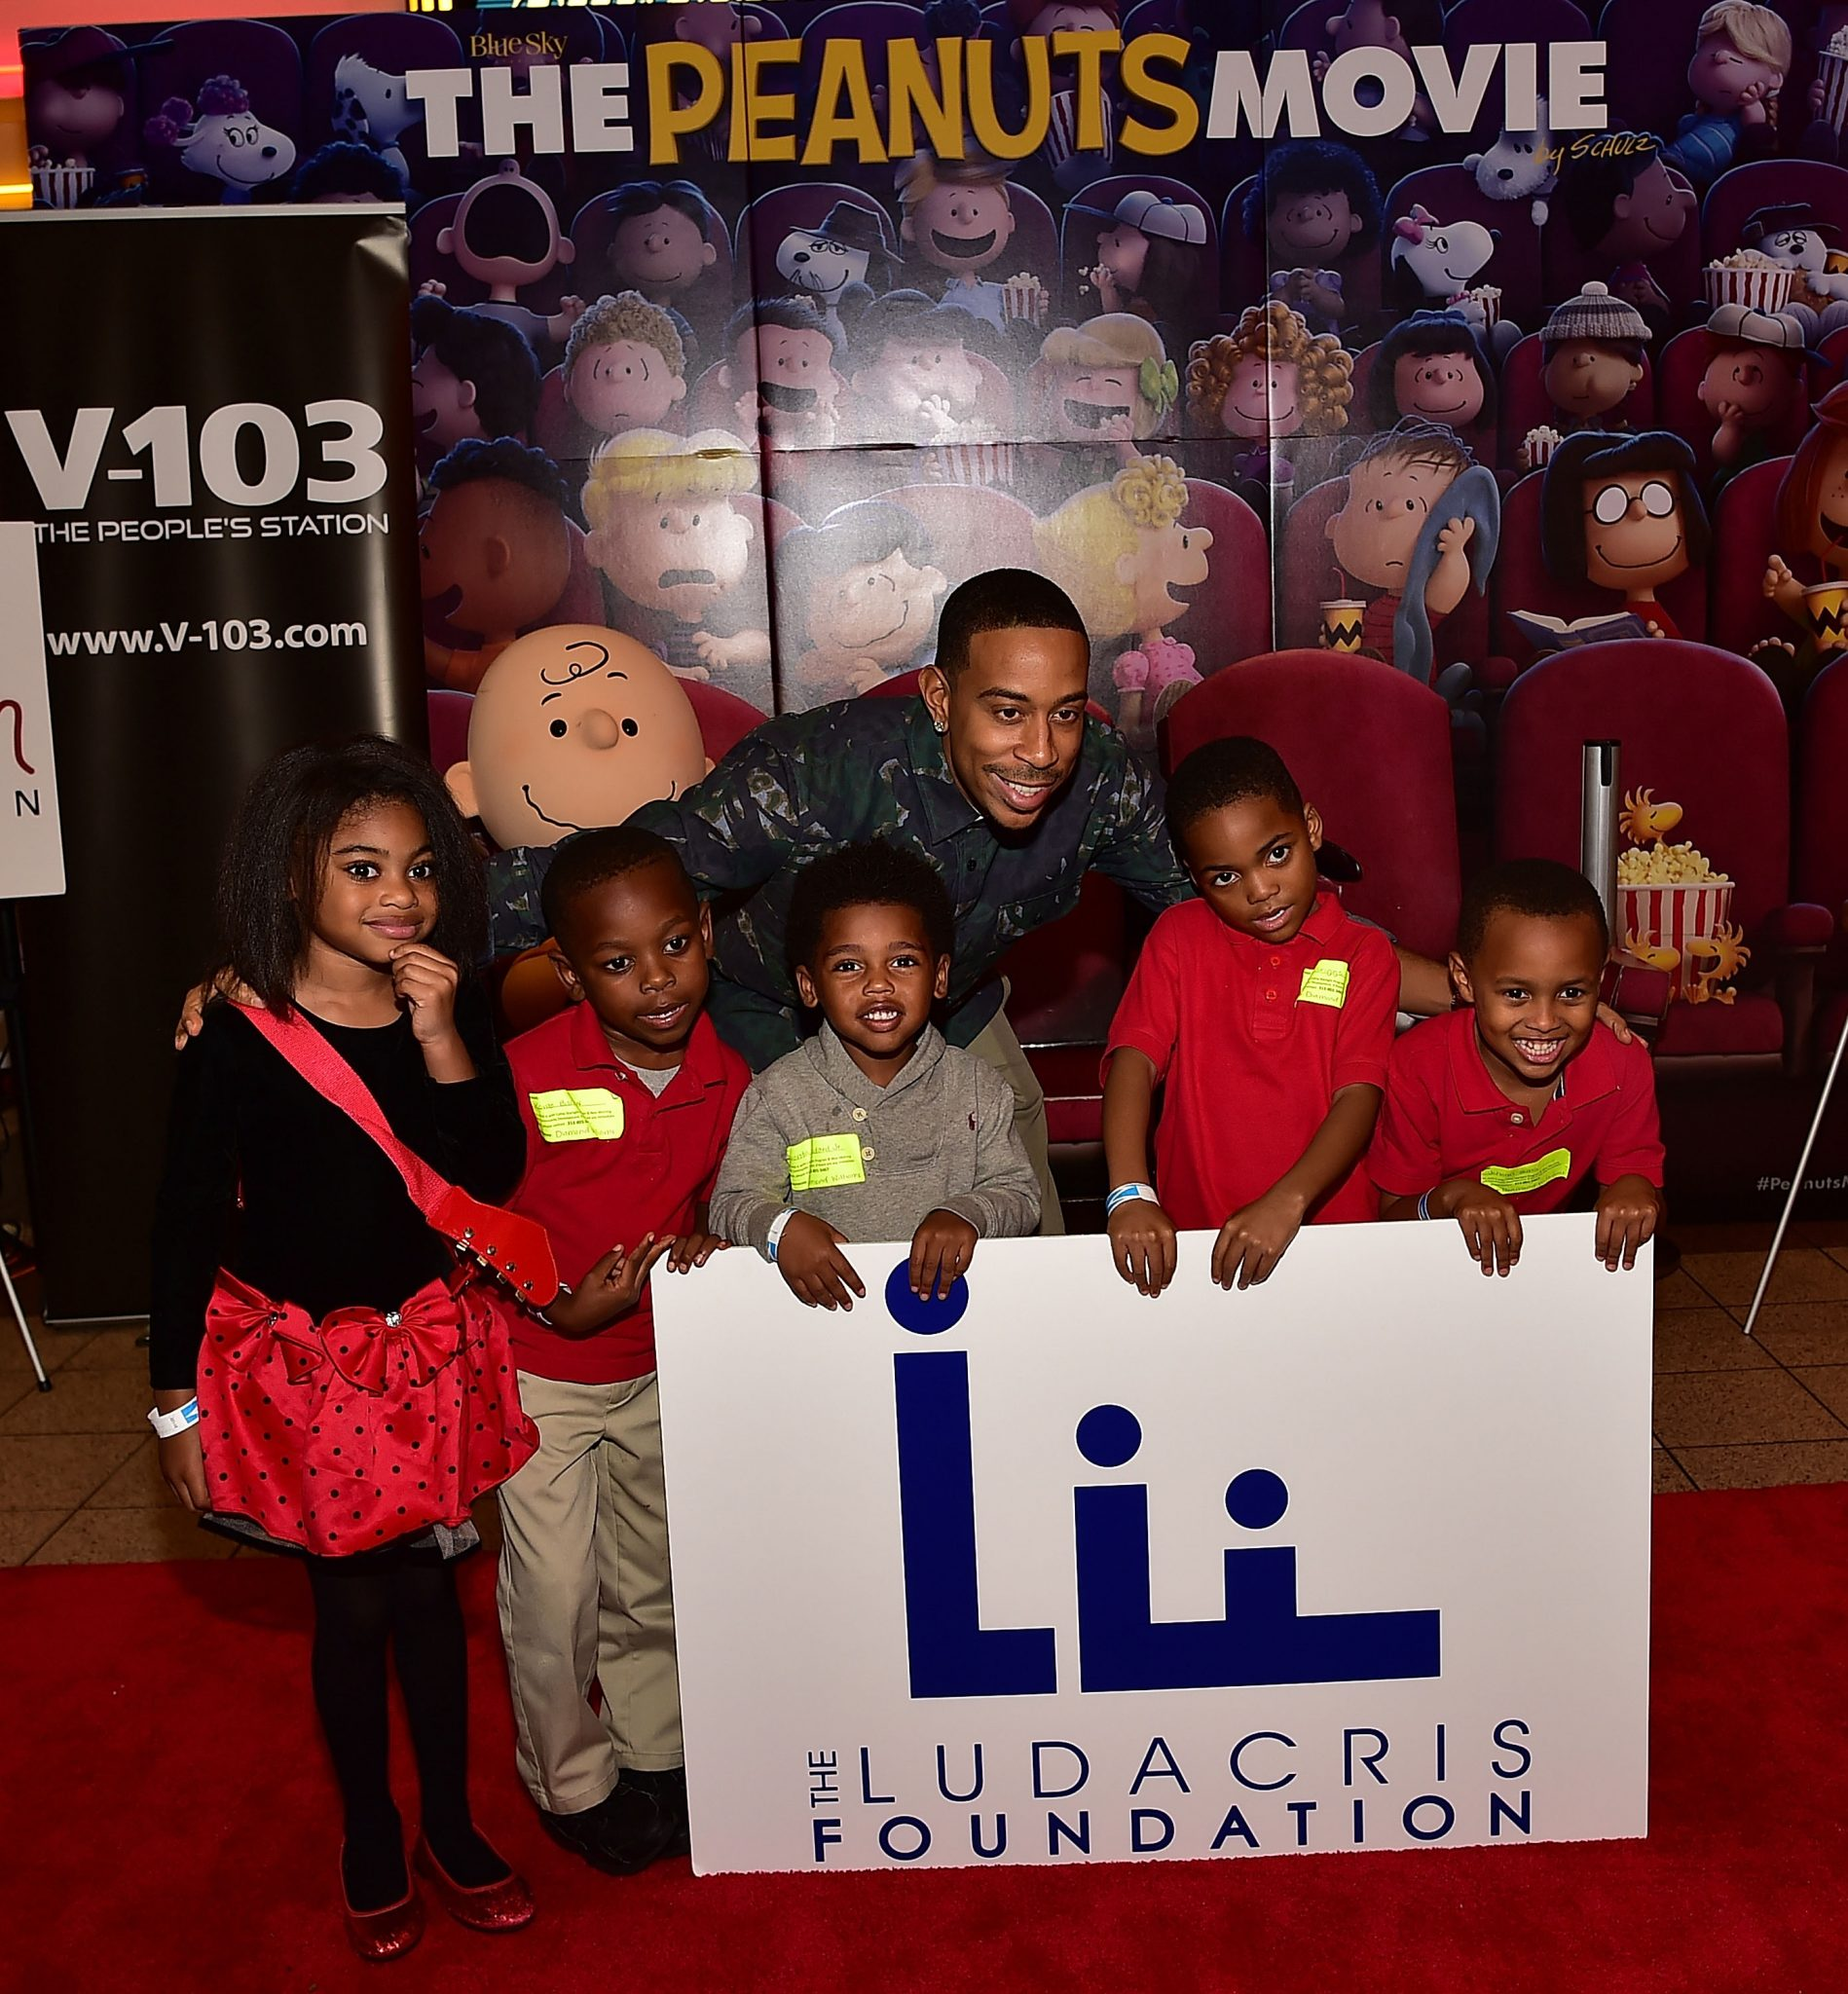 'The Peanuts Movie' VIP Red Carpet With Ludacris & Ryan Cameron Foundations